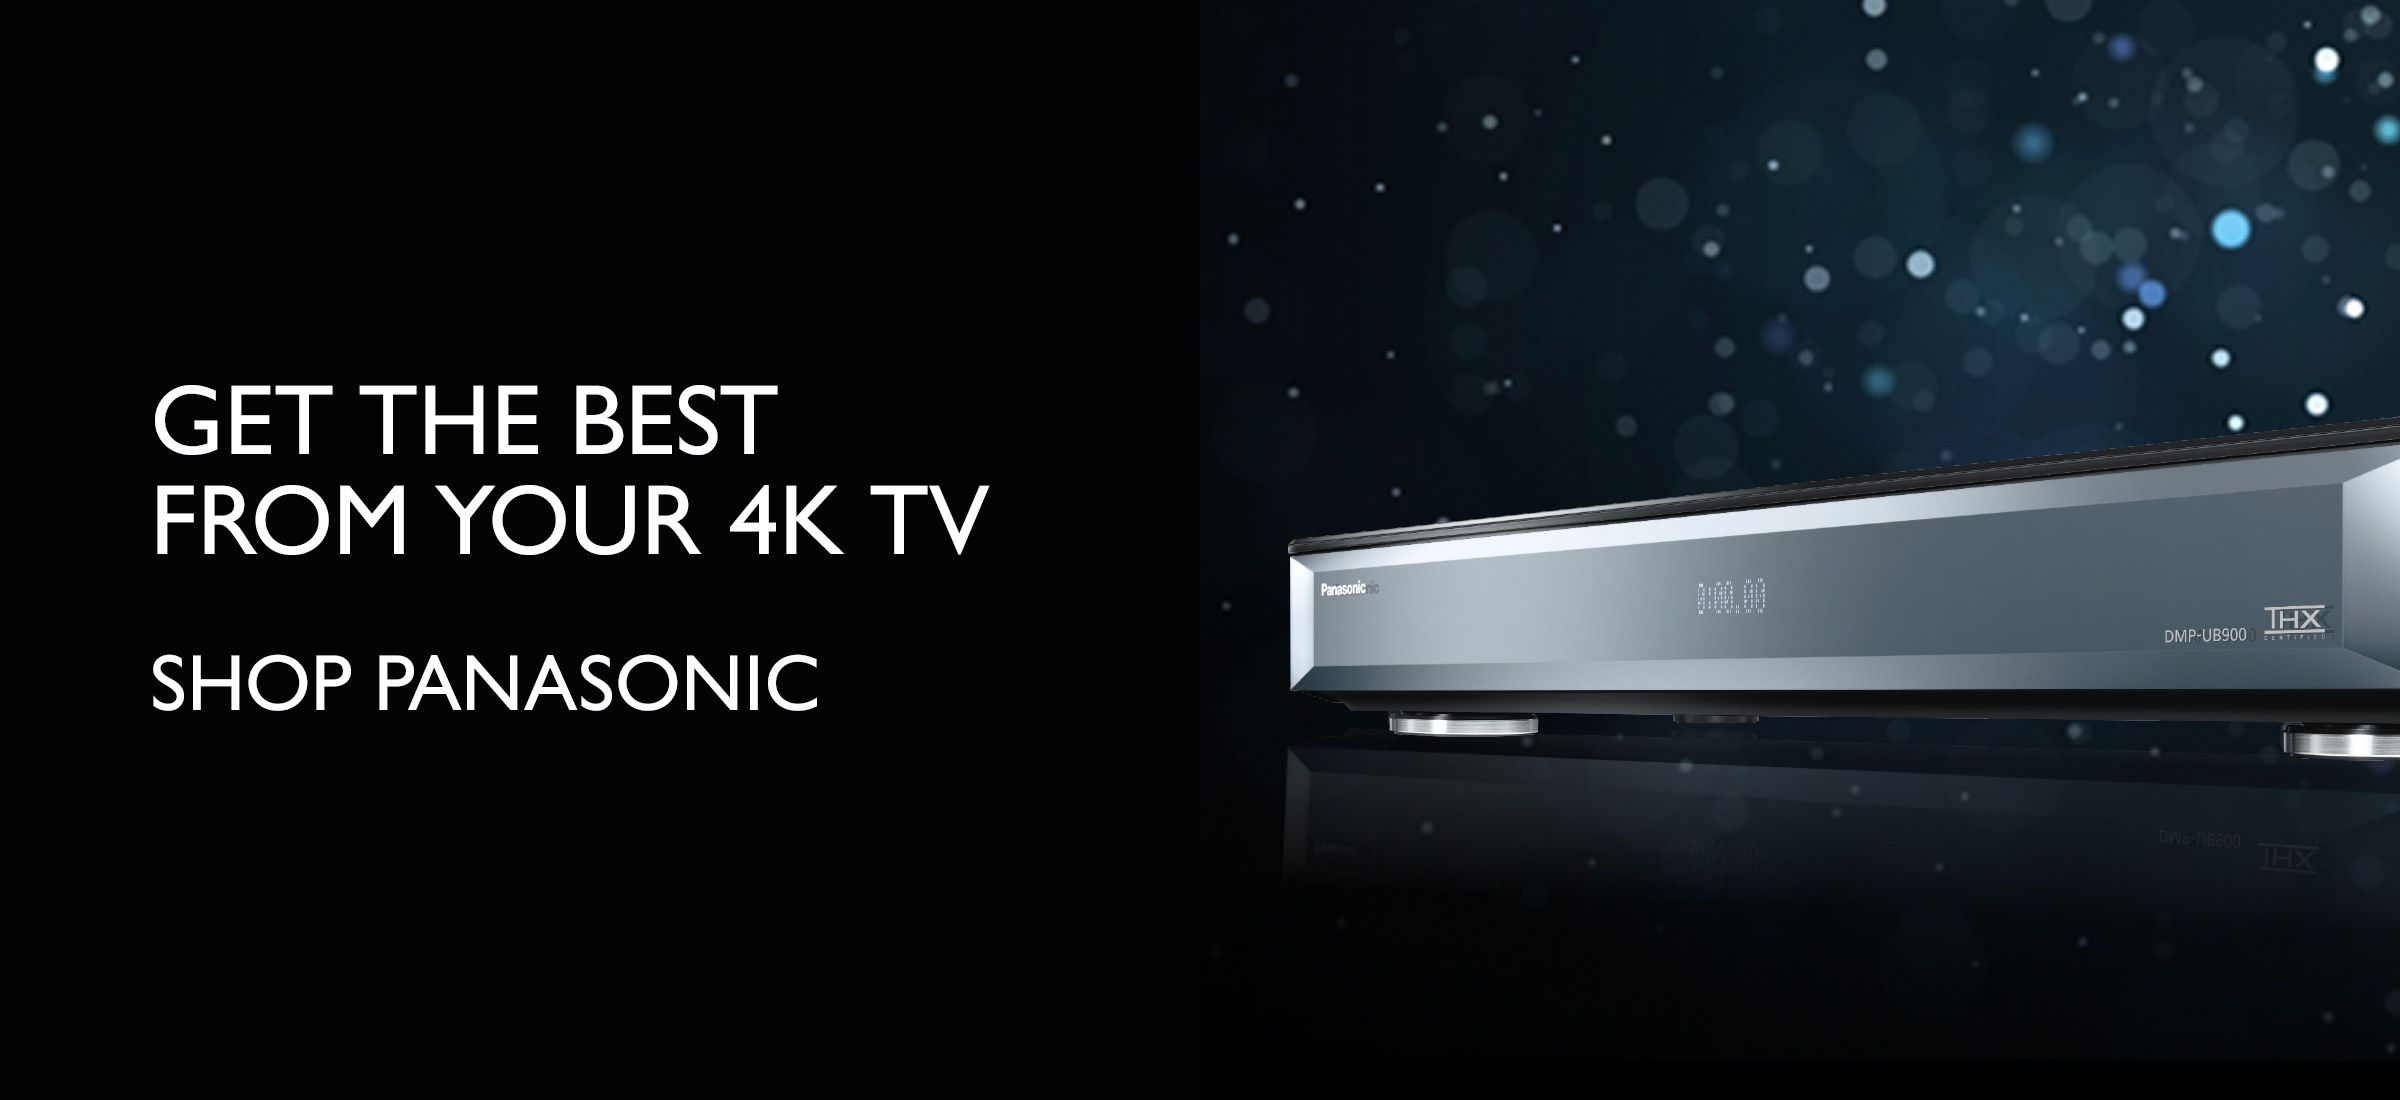 Get the best from your 4K TV